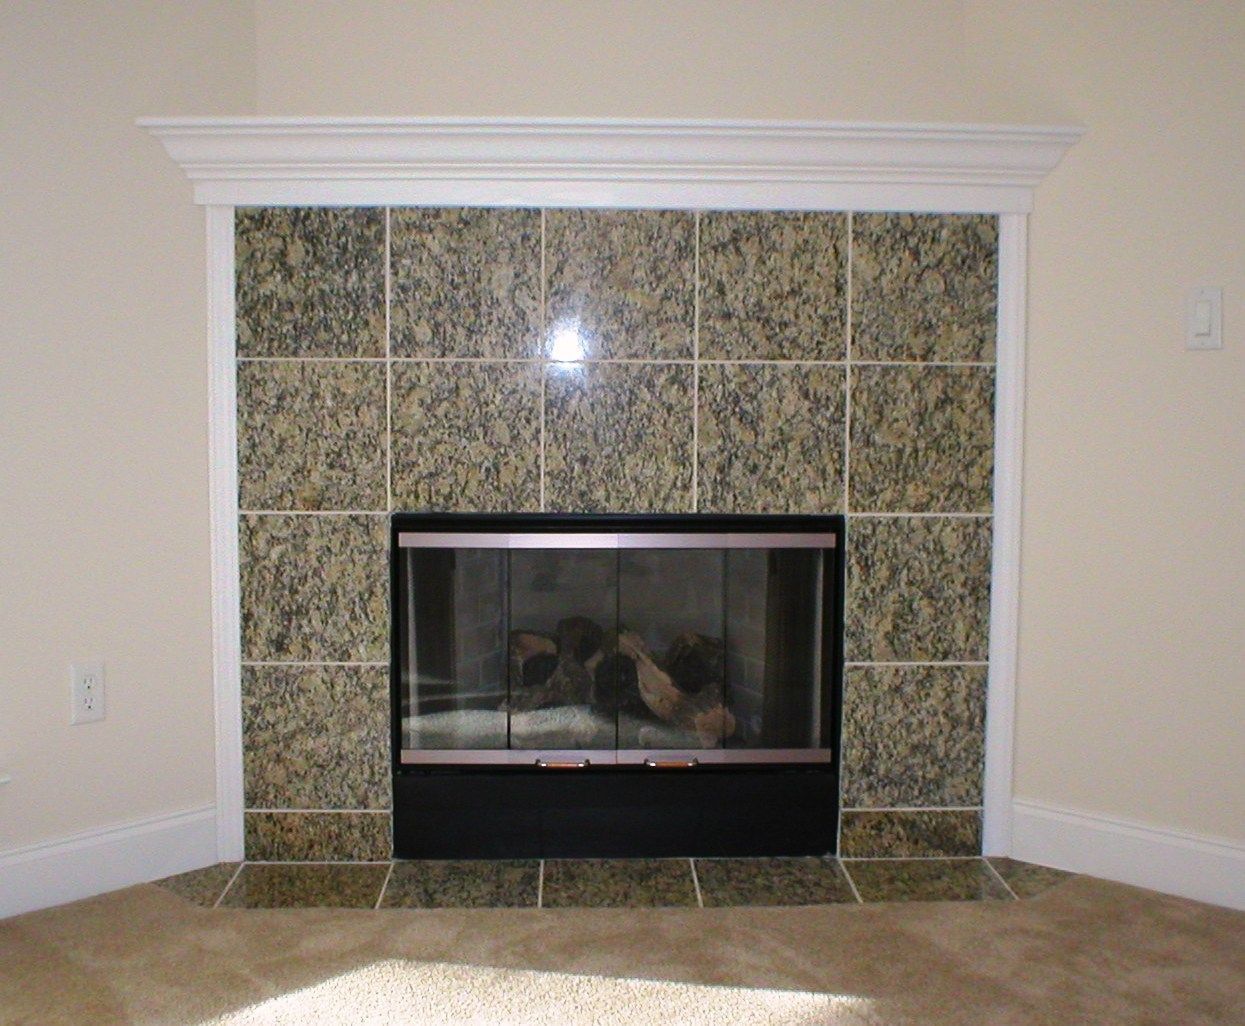 Granite Tile Fireplace Surround Fireplace Tile Simple Fireplace Fireplace Tile Surround